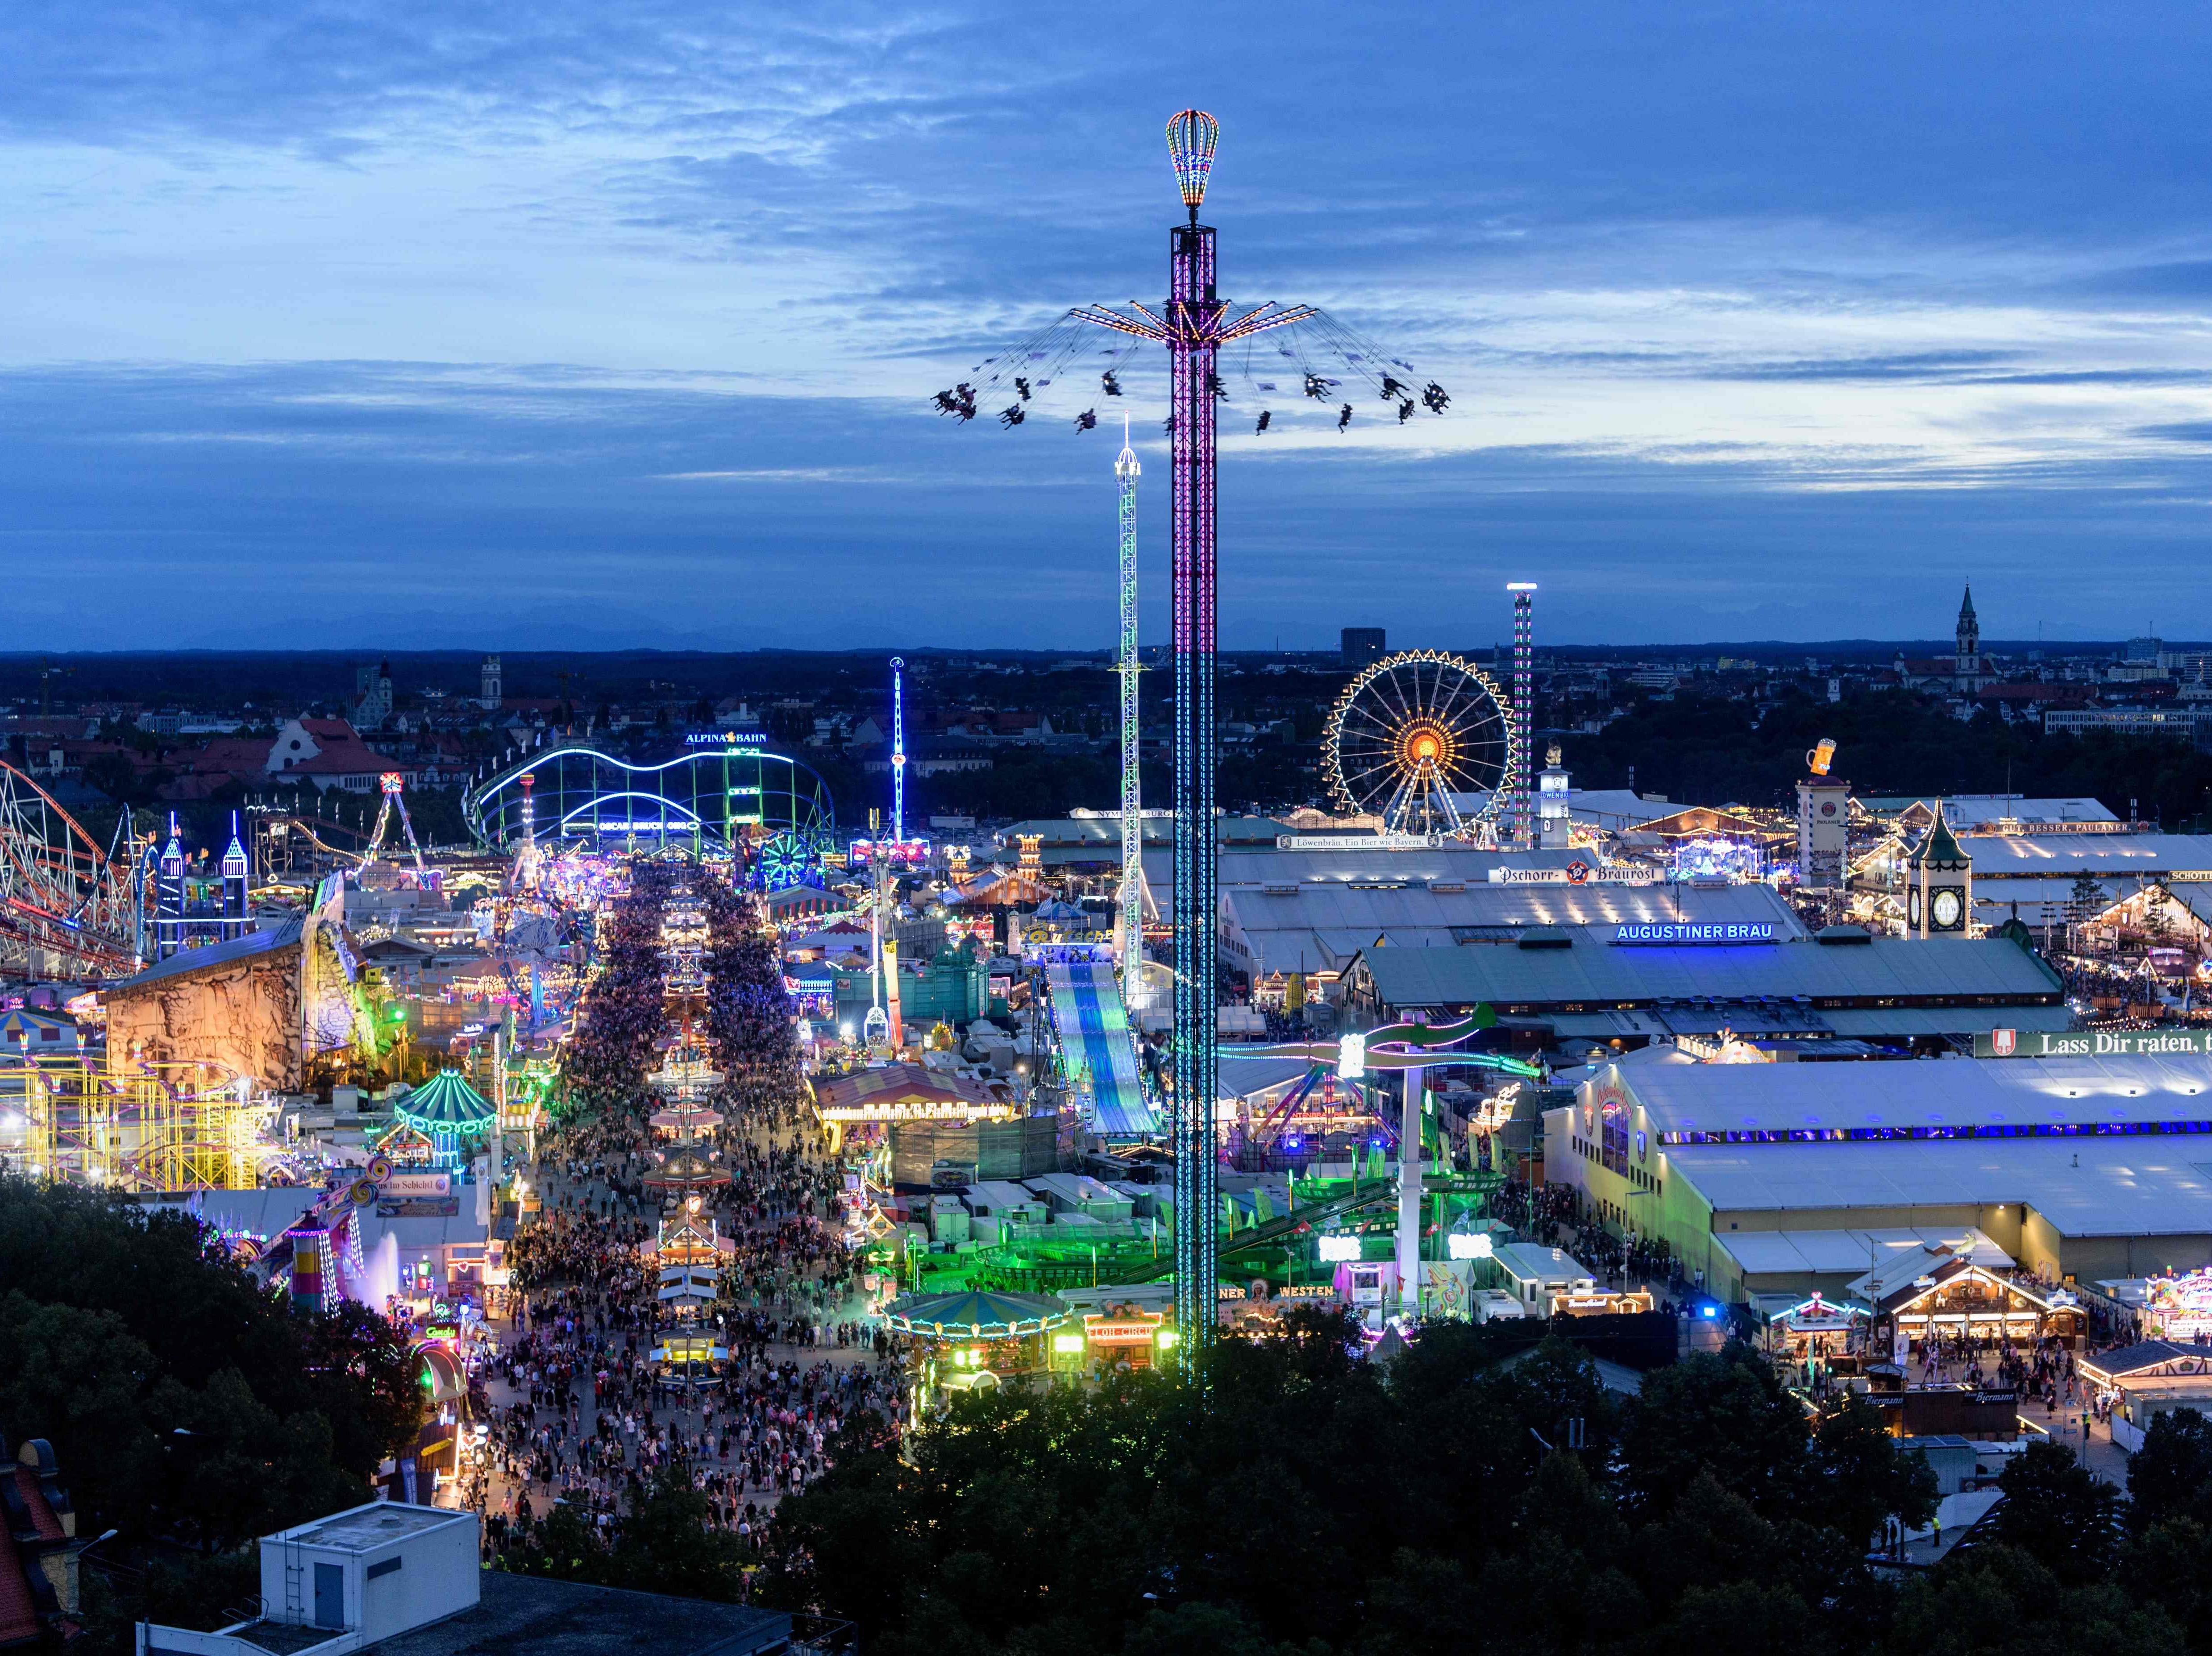 A picture taken on Sept. 22, 2018 shows a view of the Theresienwiese fair ground of the Oktoberfest beer festival in Munich, southern Germany.